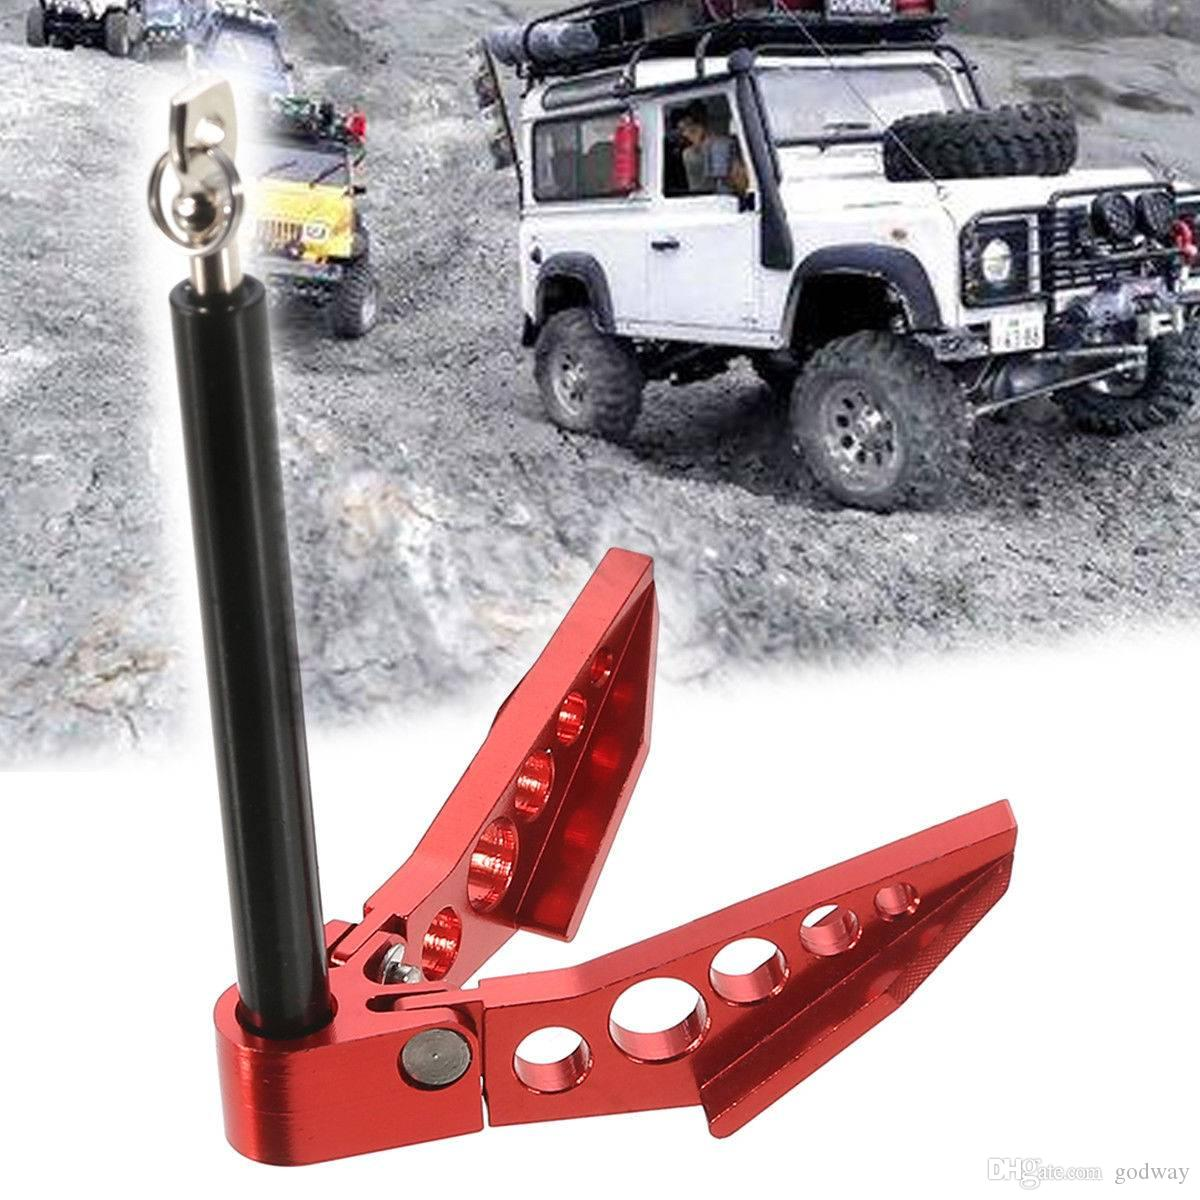 hight resolution of 2019 1 10 scale metal foldable winch anchor for rc crawler car accessories red for axial scx10 tamiya cc01 rc4wd d90 d110 tf2 from godway 11 05 dhgate